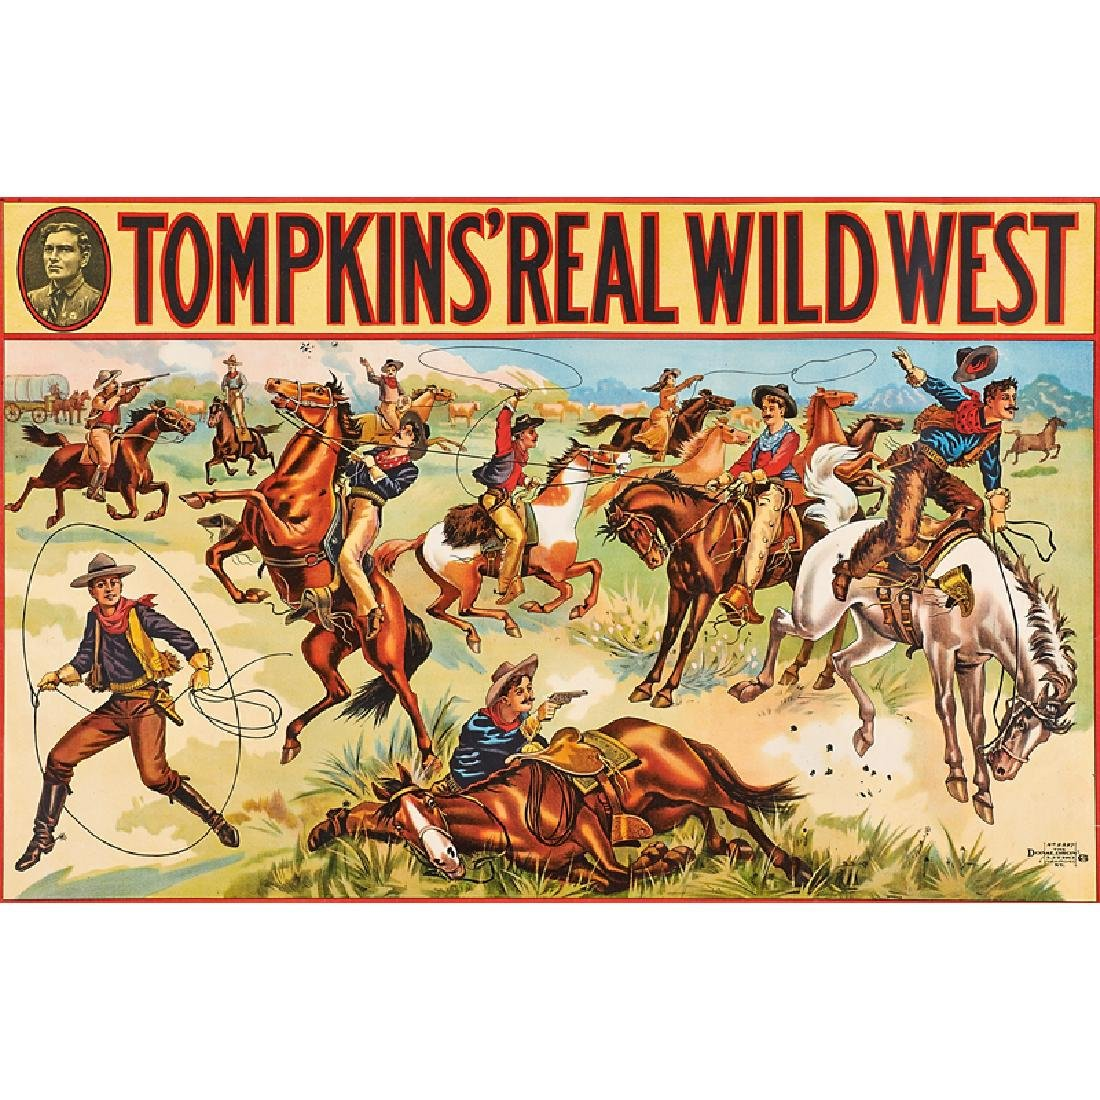 TOMPKINS' REAL WILD WEST POSTERS